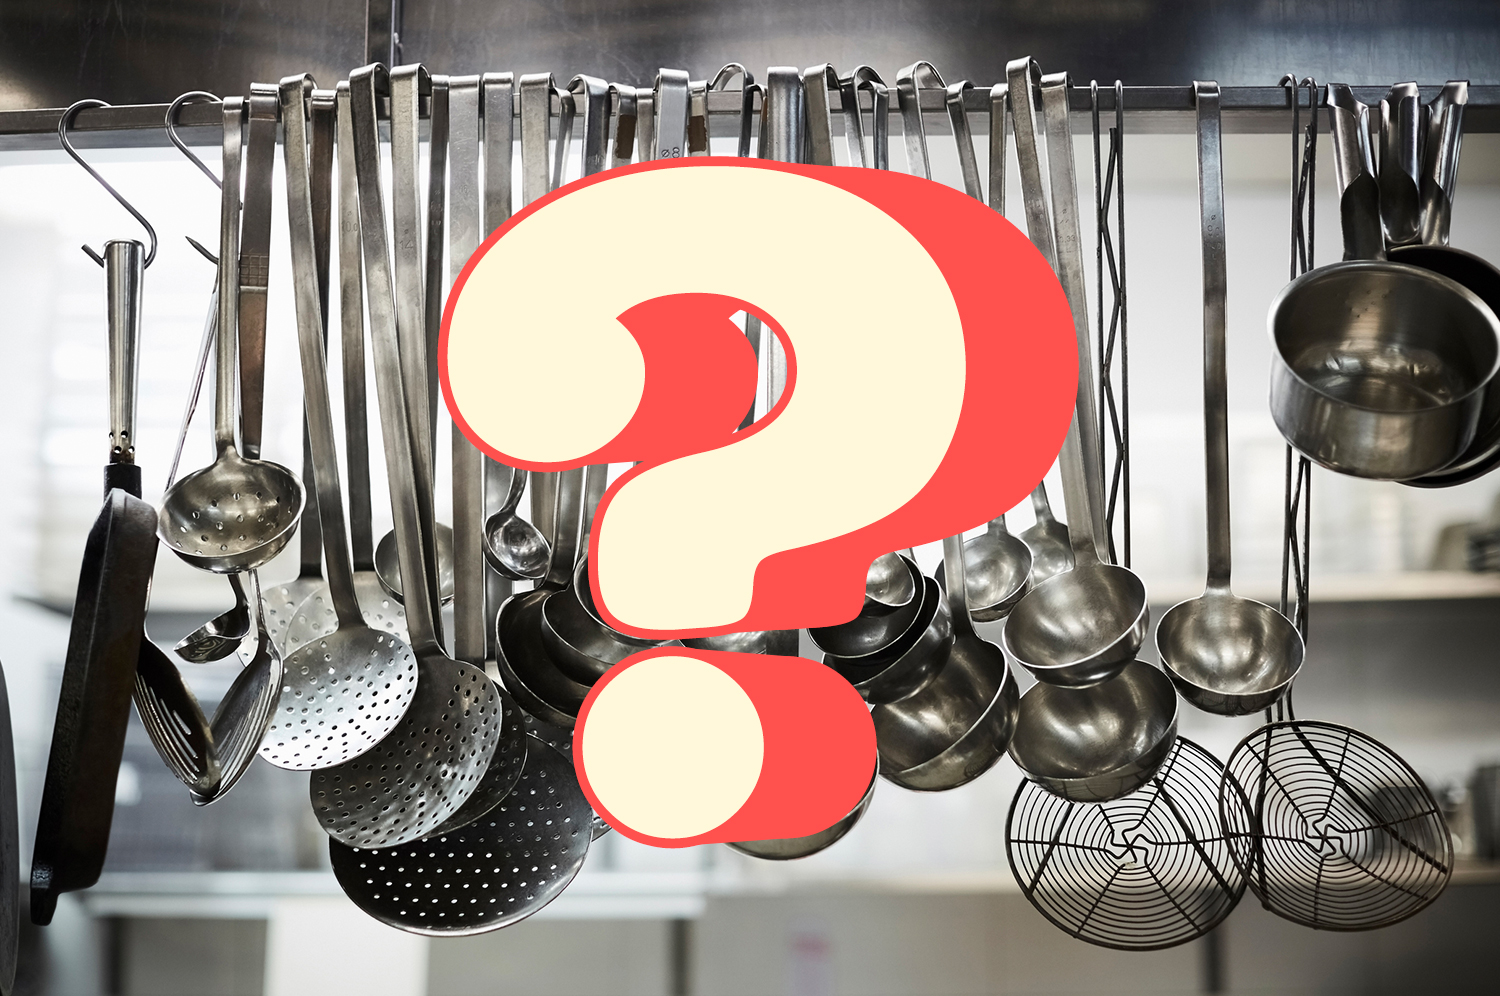 A question mark over a photo of hanging kitchen utensils